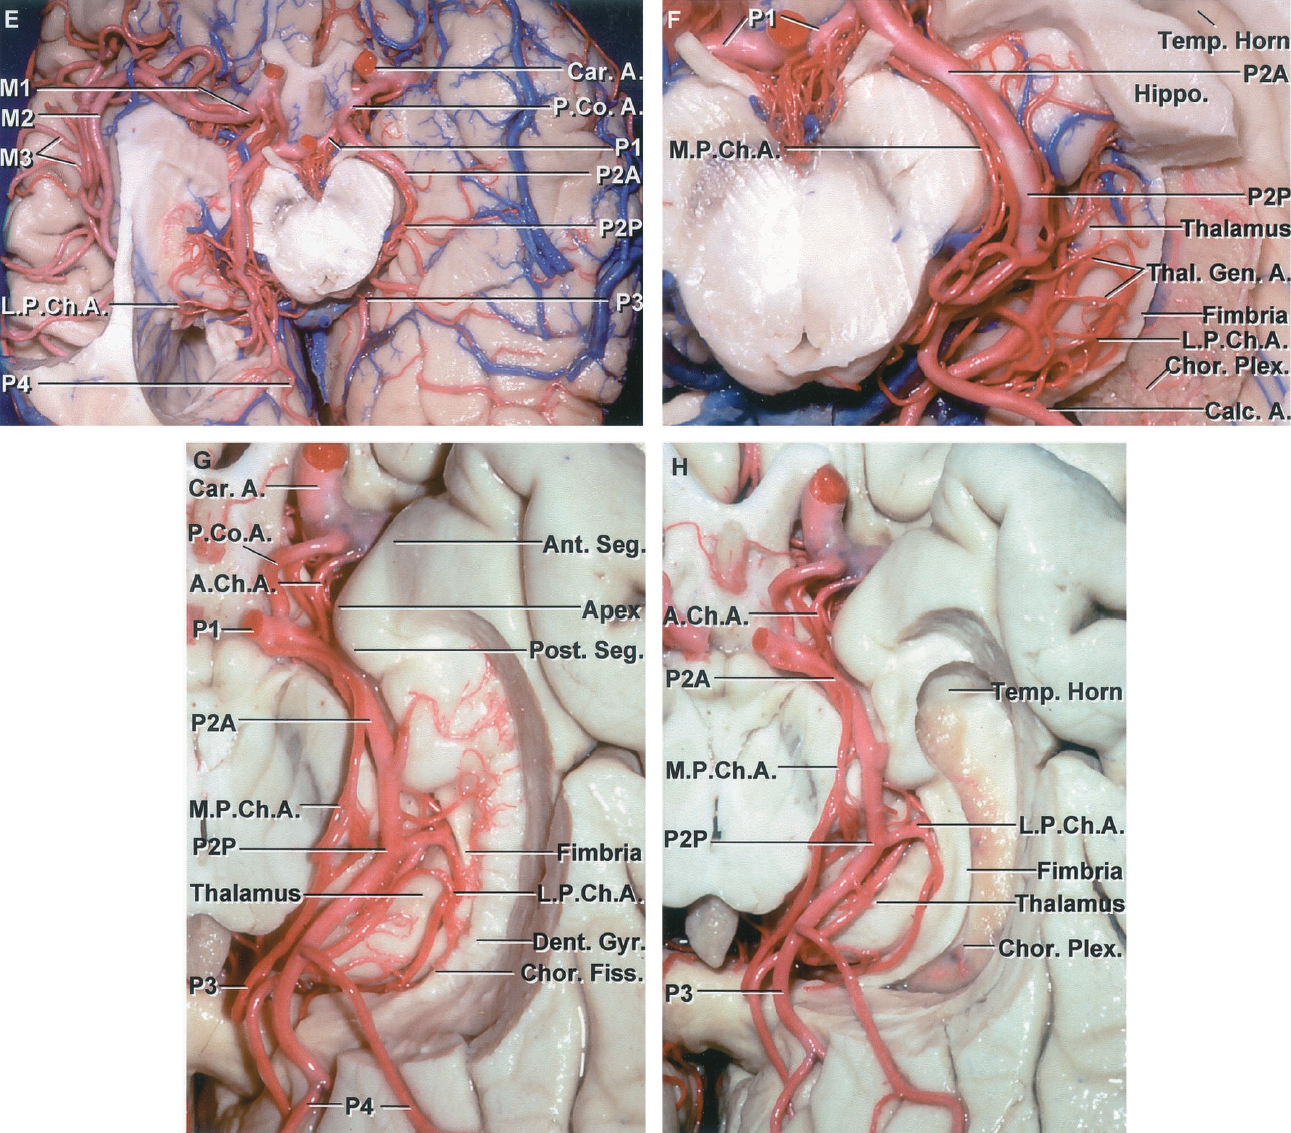 FIGURE 2.13 E-H.E, inferior surface of both cerebral hemispheres showing the MCA coursing along the sylvian cistern and the PCAs coursing through the crural, ambient, and quadrigeminal cisterns. F, enlarged view of the P2P coursing below the thalamus, which forms the roof of the ambient cistern. The left temporal horn has been opened by removing part of the floor. Some of the head of the hippocampus has been preserved. The P2P gives rise to a complex arborizing group of perforating arteries that enter the lower thalamus, some passing through the geniculate bodies, and constituting the thalamogeniculate arteries. G, inferior view of another cerebral hemisphere. The medial part of the parahippocampal gyrus has been removed to expose the PCA coursing through the crural, ambient, and quadrigeminal cisterns. The AChA courses around the uncus. The uncus has an anterior segment that faces the carotid, middle cerebral, anterior choroidal, and posterior communicating arteries, and a posterior segment that faces the posterior cerebral and the terminal segment of the AChA. The choroidal fissure is located between fimbria of the fornix and the lower surface of the thalamus and has its lower end just behind the posterior uncal segment. The LPChA pass laterally through the choroidal fissure located between the fimbria and the thalamus. The dentate gyrus is located below the fimbria. A MPChA courses medial to the PCA. H, the dentate gyrus and adjacent part of the parahippocampal gyrus has been removed to expose the choroid plexus in the temporal horn. The LPChAs pass laterally between the fimbria and the lower margin of the thalamus, formed in part by the lateral geniculate body and pulvinar, to reach the choroid plexus in the temporal horn and atrium. A., artery; A.Ch.A., anterior choroidal artery; Amygd., amygdala; Ant., anterior; Calc., calcarine; Car., carotid; Chor., choroid, choroidal; Dent., dentate; Fiss., fissure; Gyr., gyrus; Hippo., hippocampal, hippocampus; Inf., infer